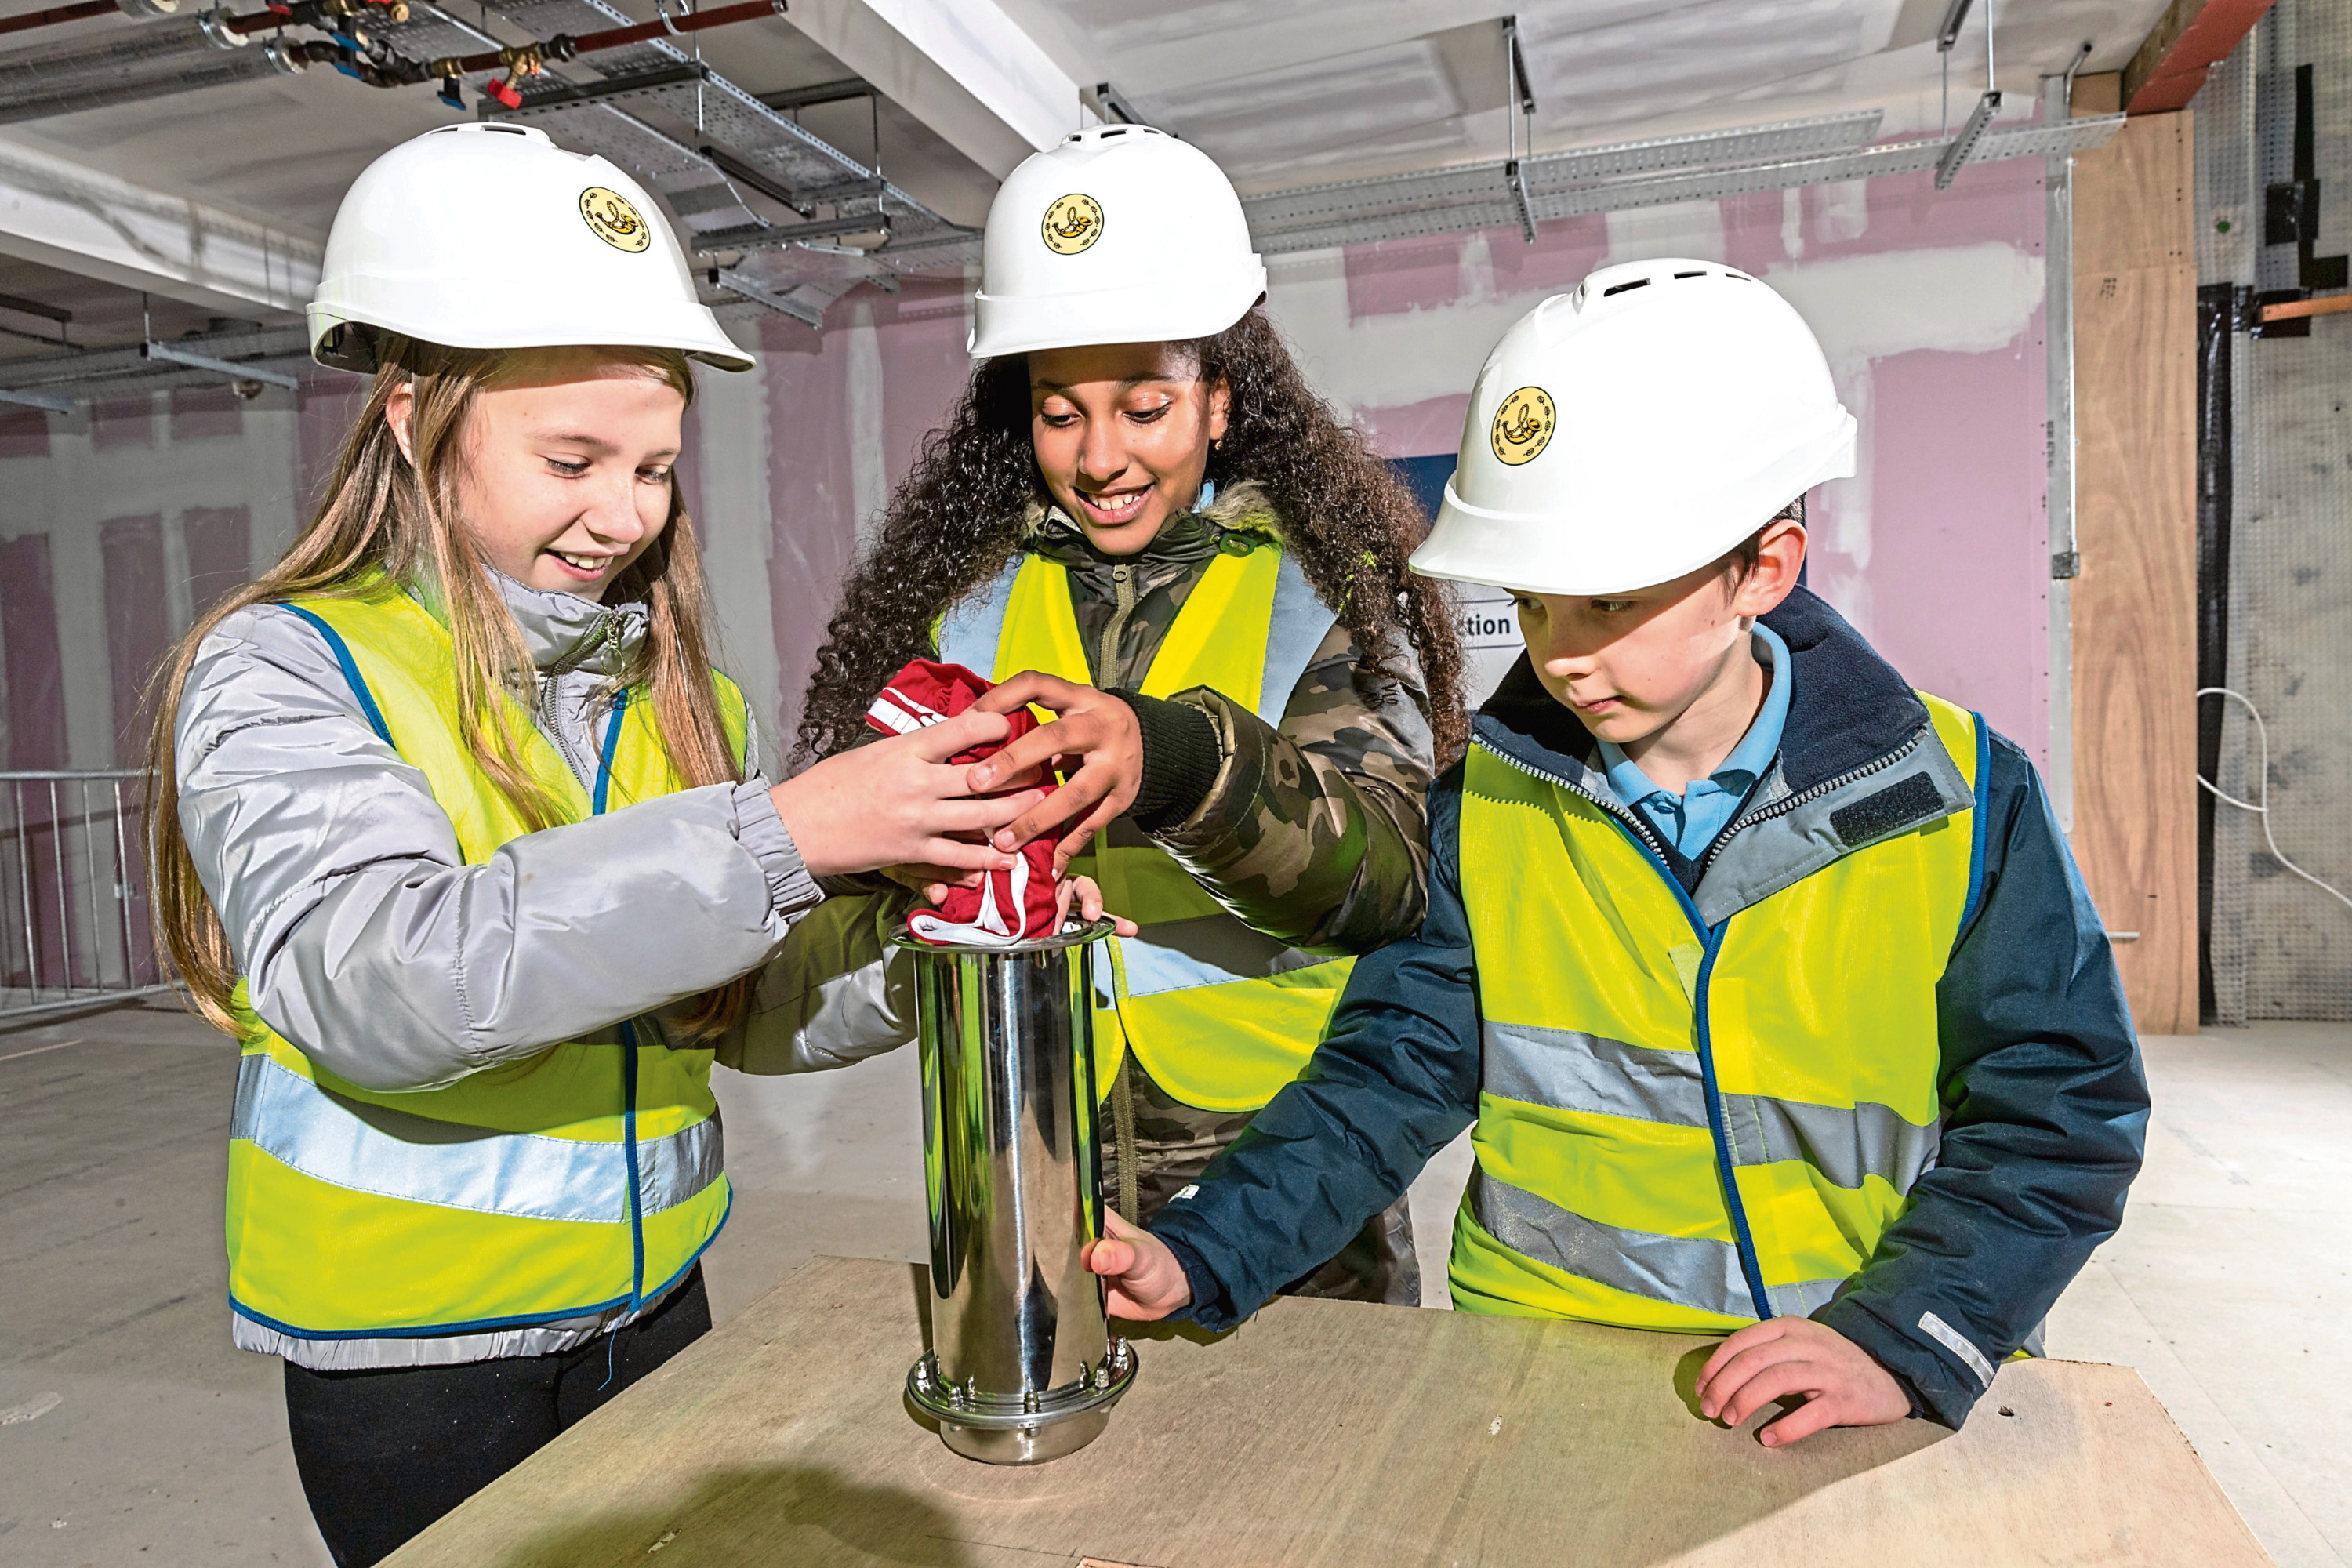 Oliwia Prokopowicz (P7), Mara Coelho (P6) and Fraser Murphy (P5) from St Peters Primary School helped fill the time capsule.